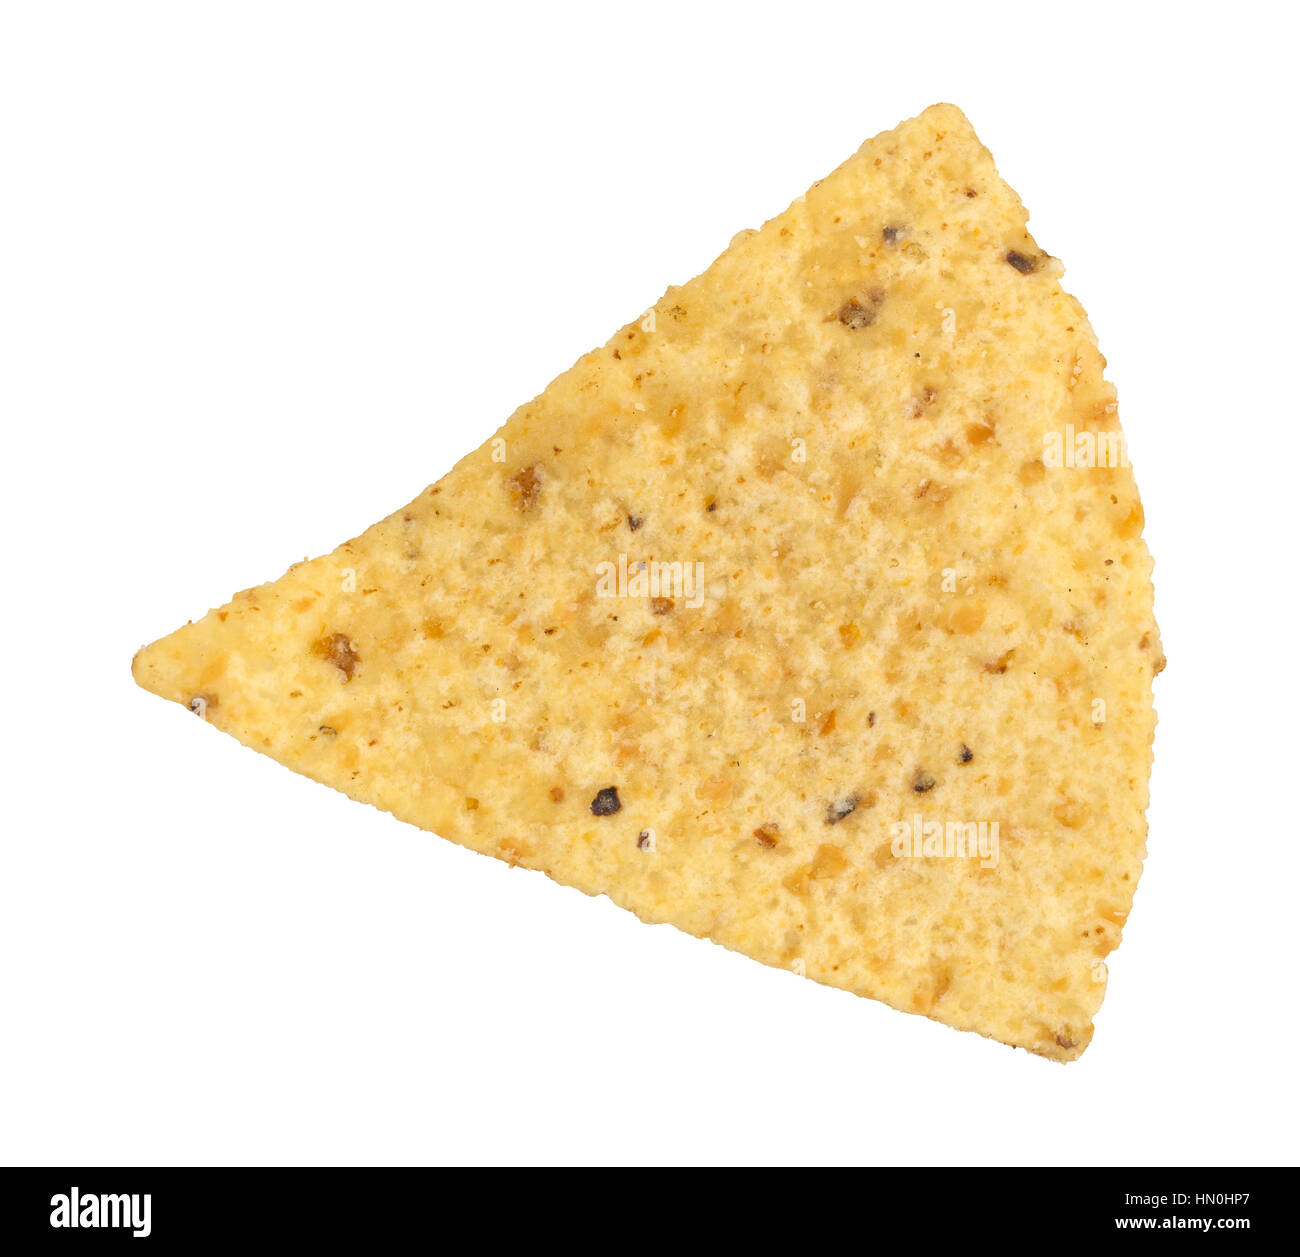 Top view of a tortilla chip isolated on a white background. - Stock Image